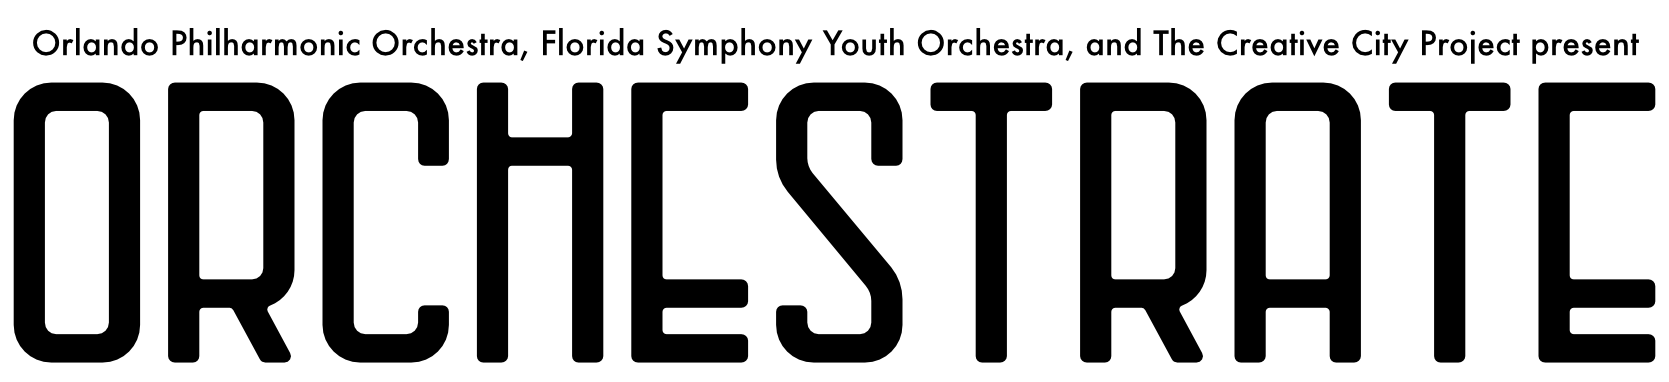 Orchestrate Logo.png